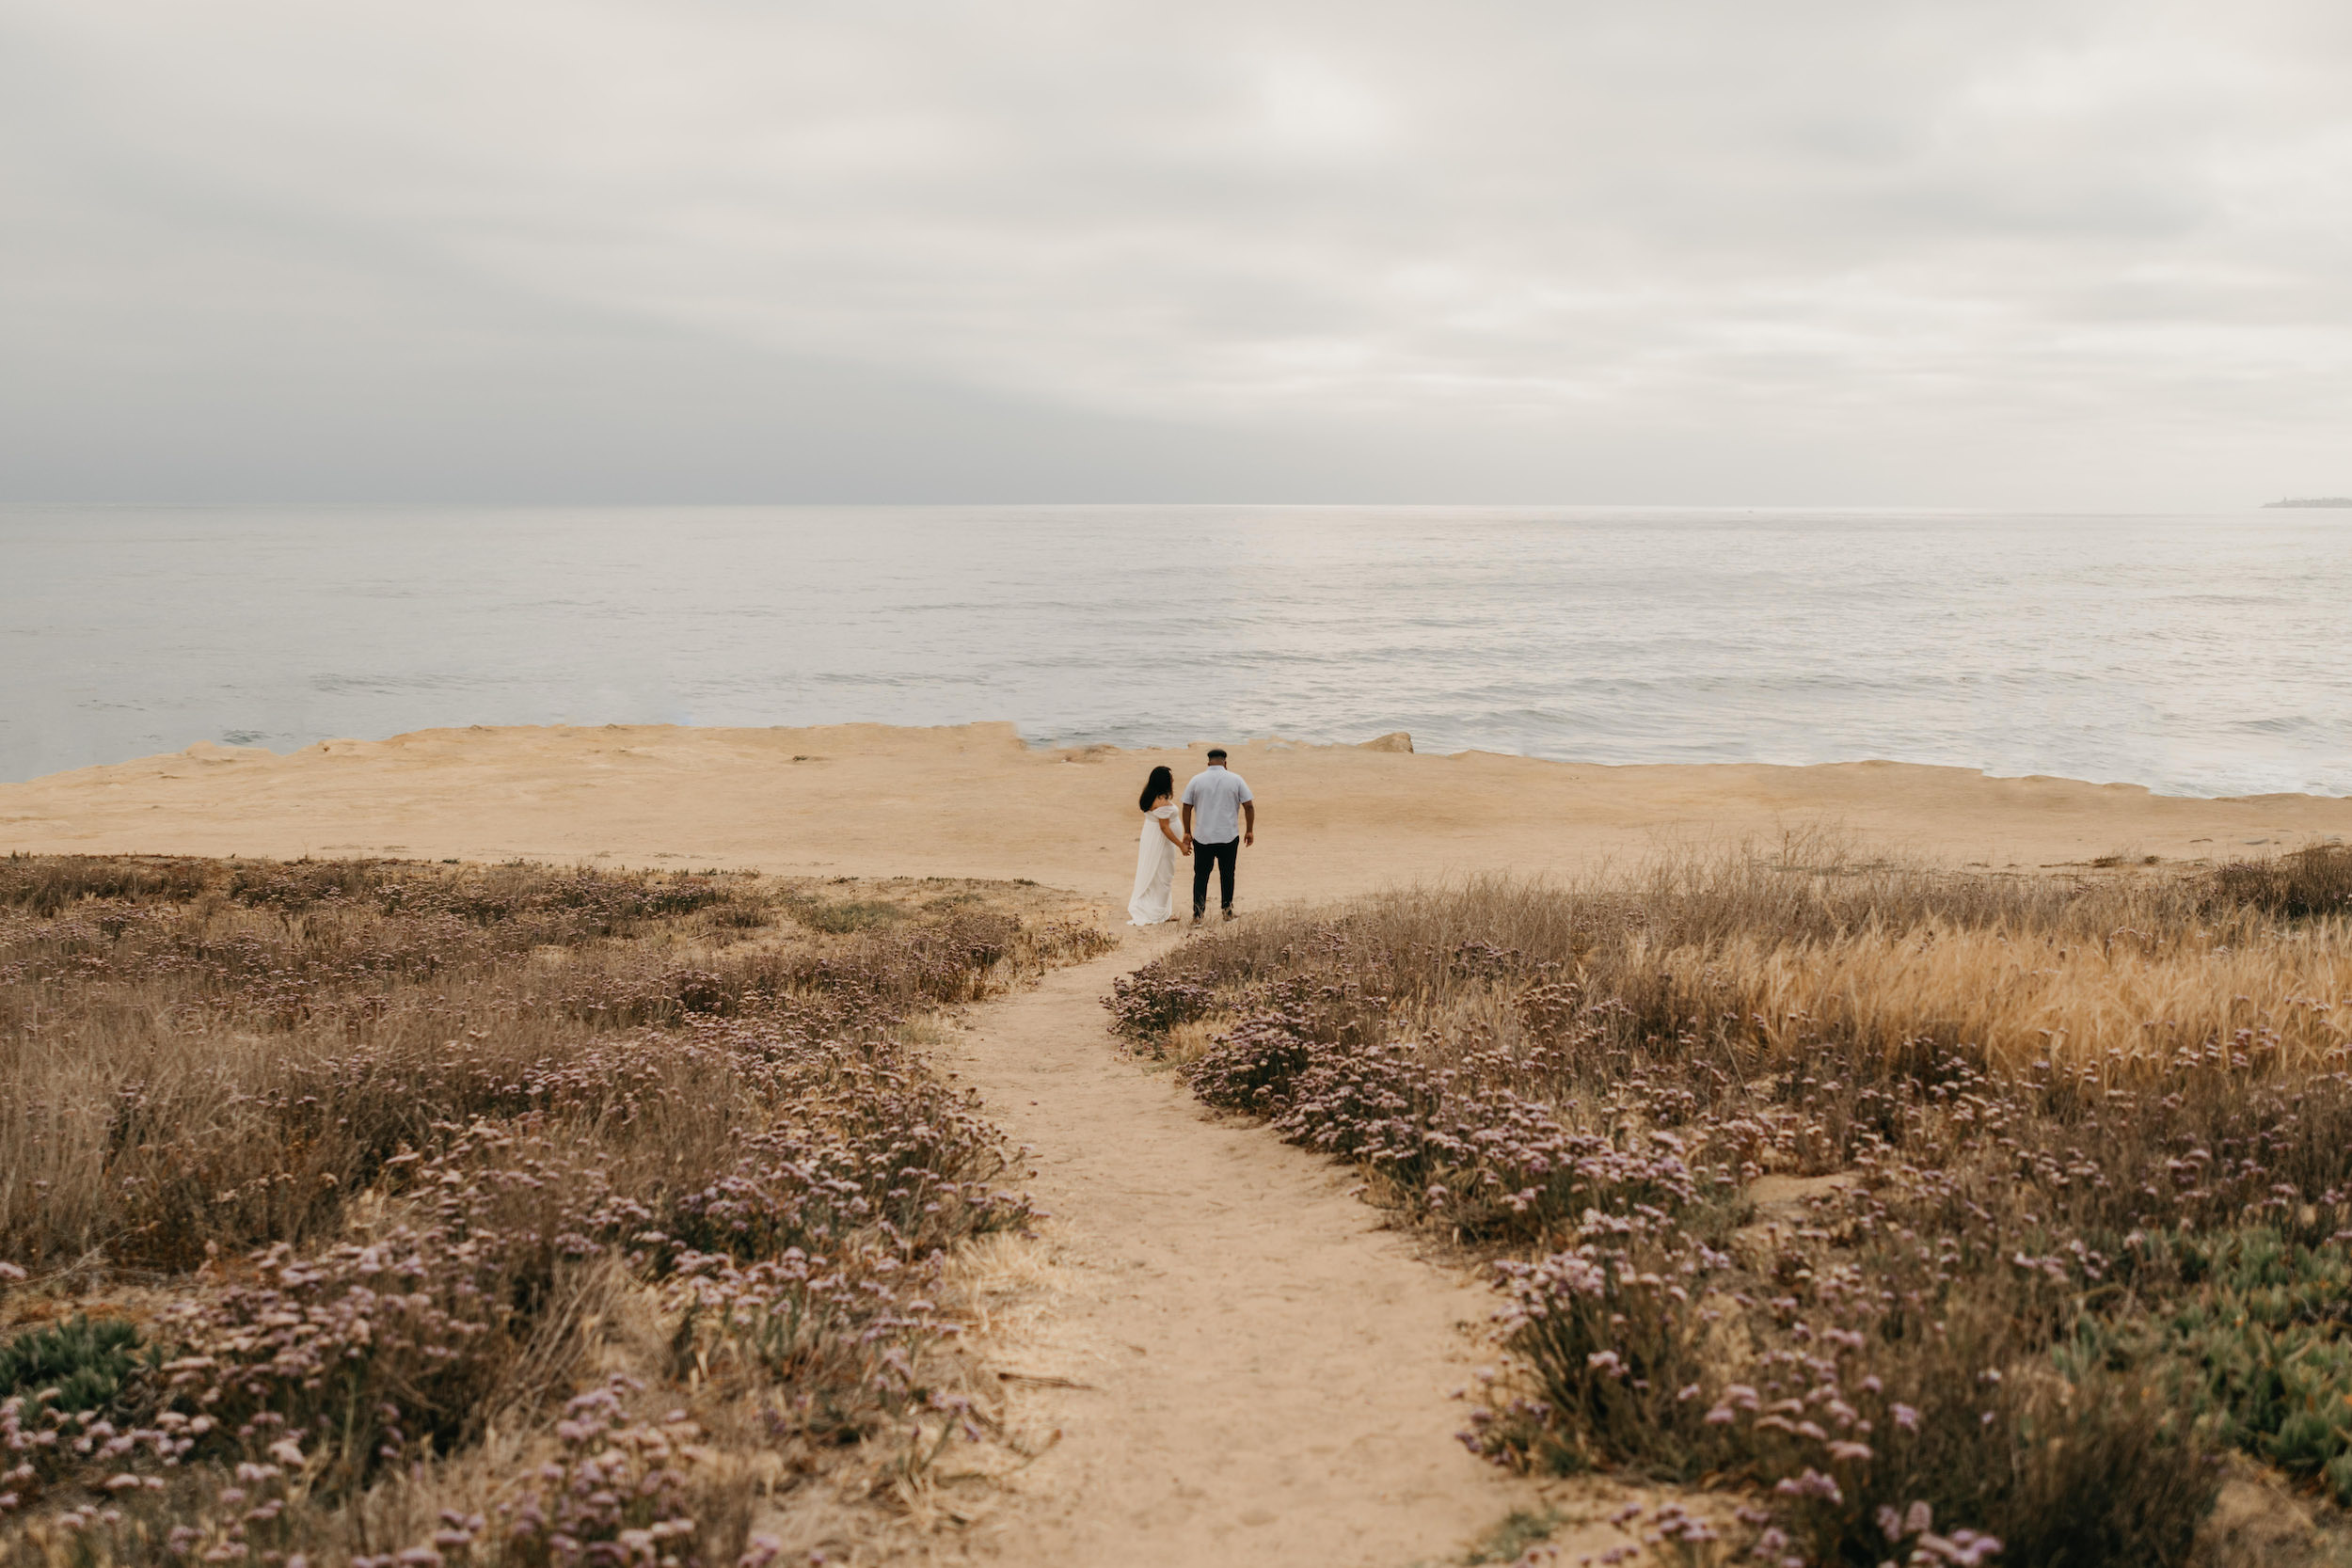 Best Engagement Photos Locations in San Diego, image by Fatima Elreda Photo